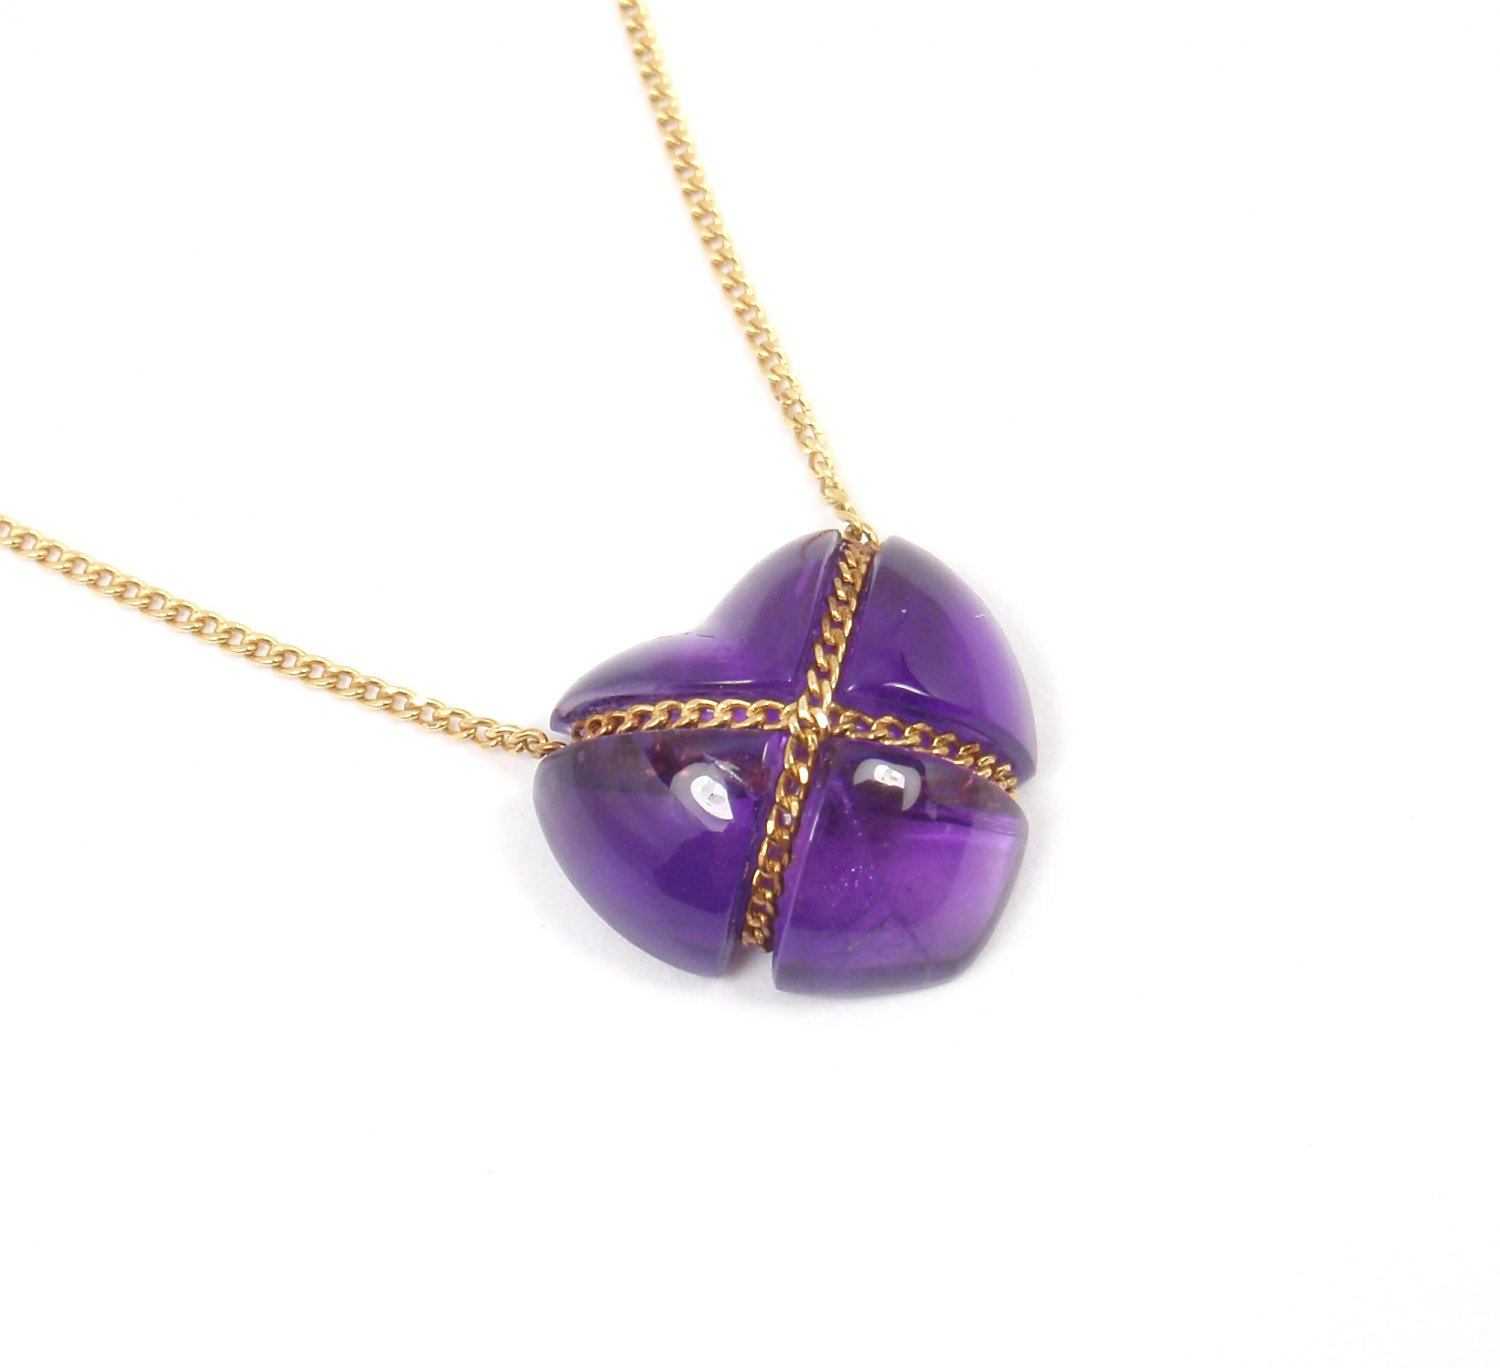 Rare Vintage Tiffany & Co 18K Yellow Gold Amethyst Purple Heart Necklace w/pouch